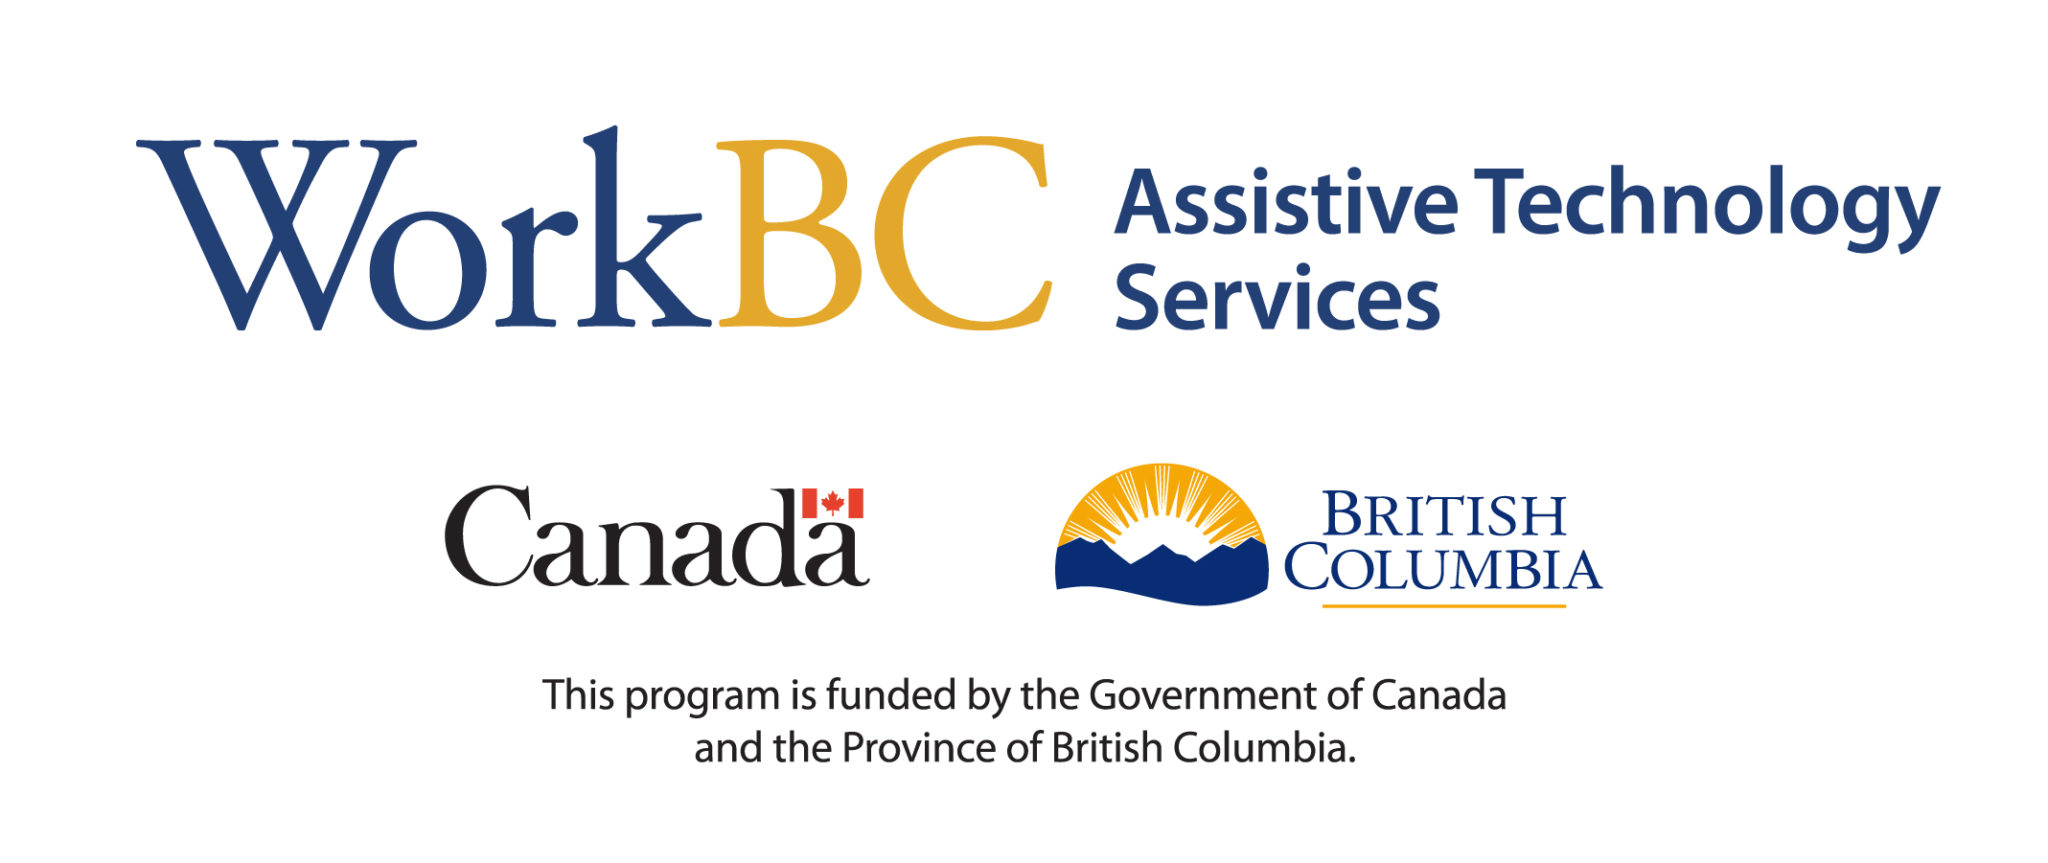 WorkBC Assistive Technology Services logo with text below: This program is funded by the Government of Canada and the Province of British Columbia